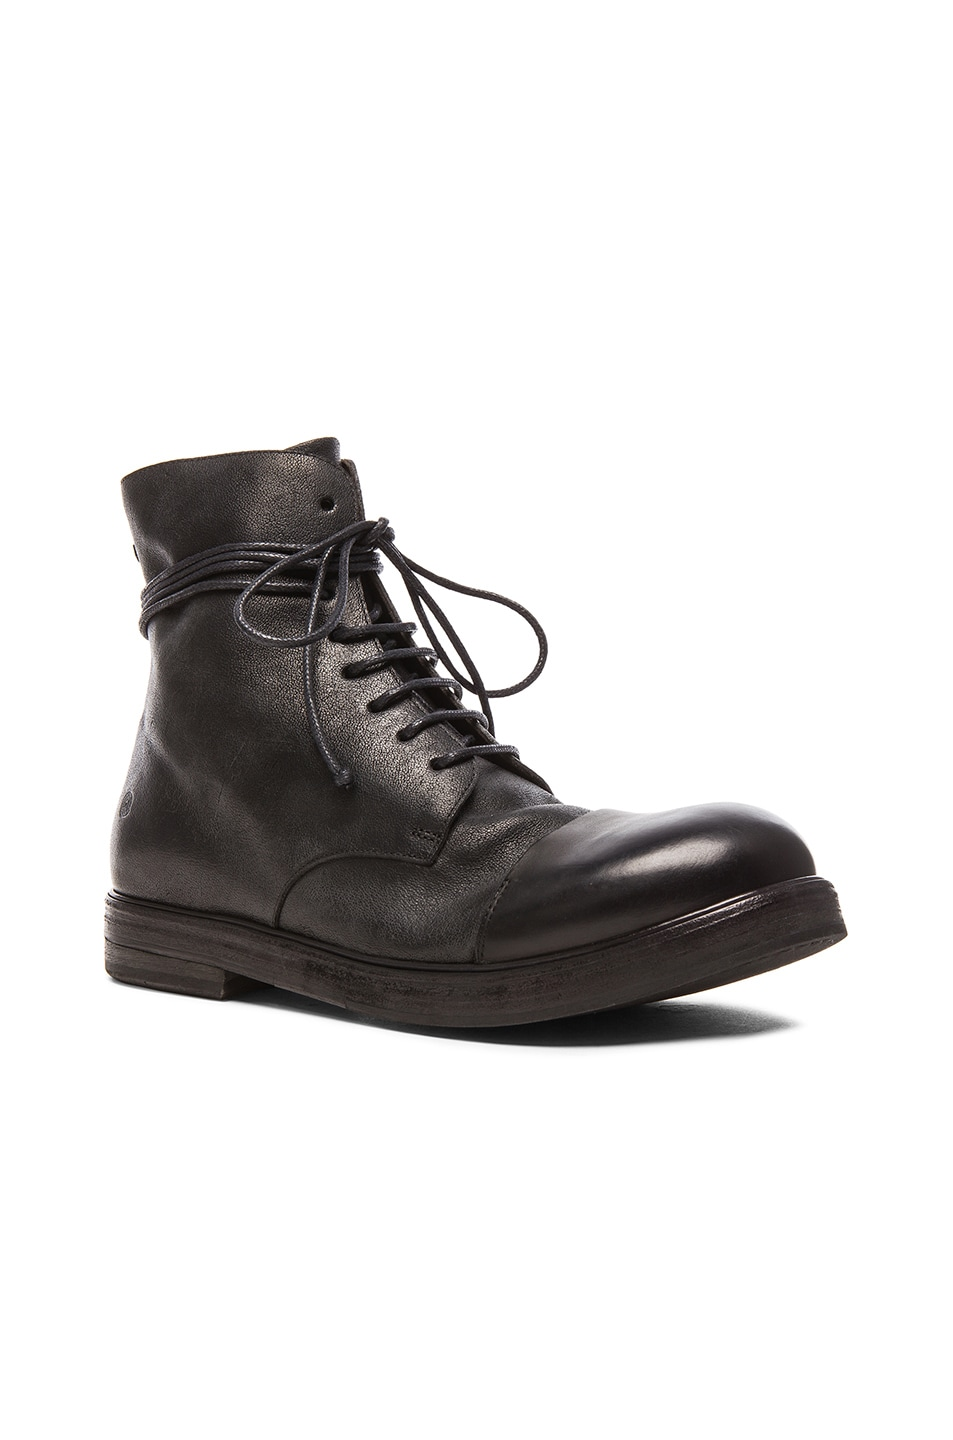 bcf32b22be4 Marsell Combat Boots in Black   FWRD